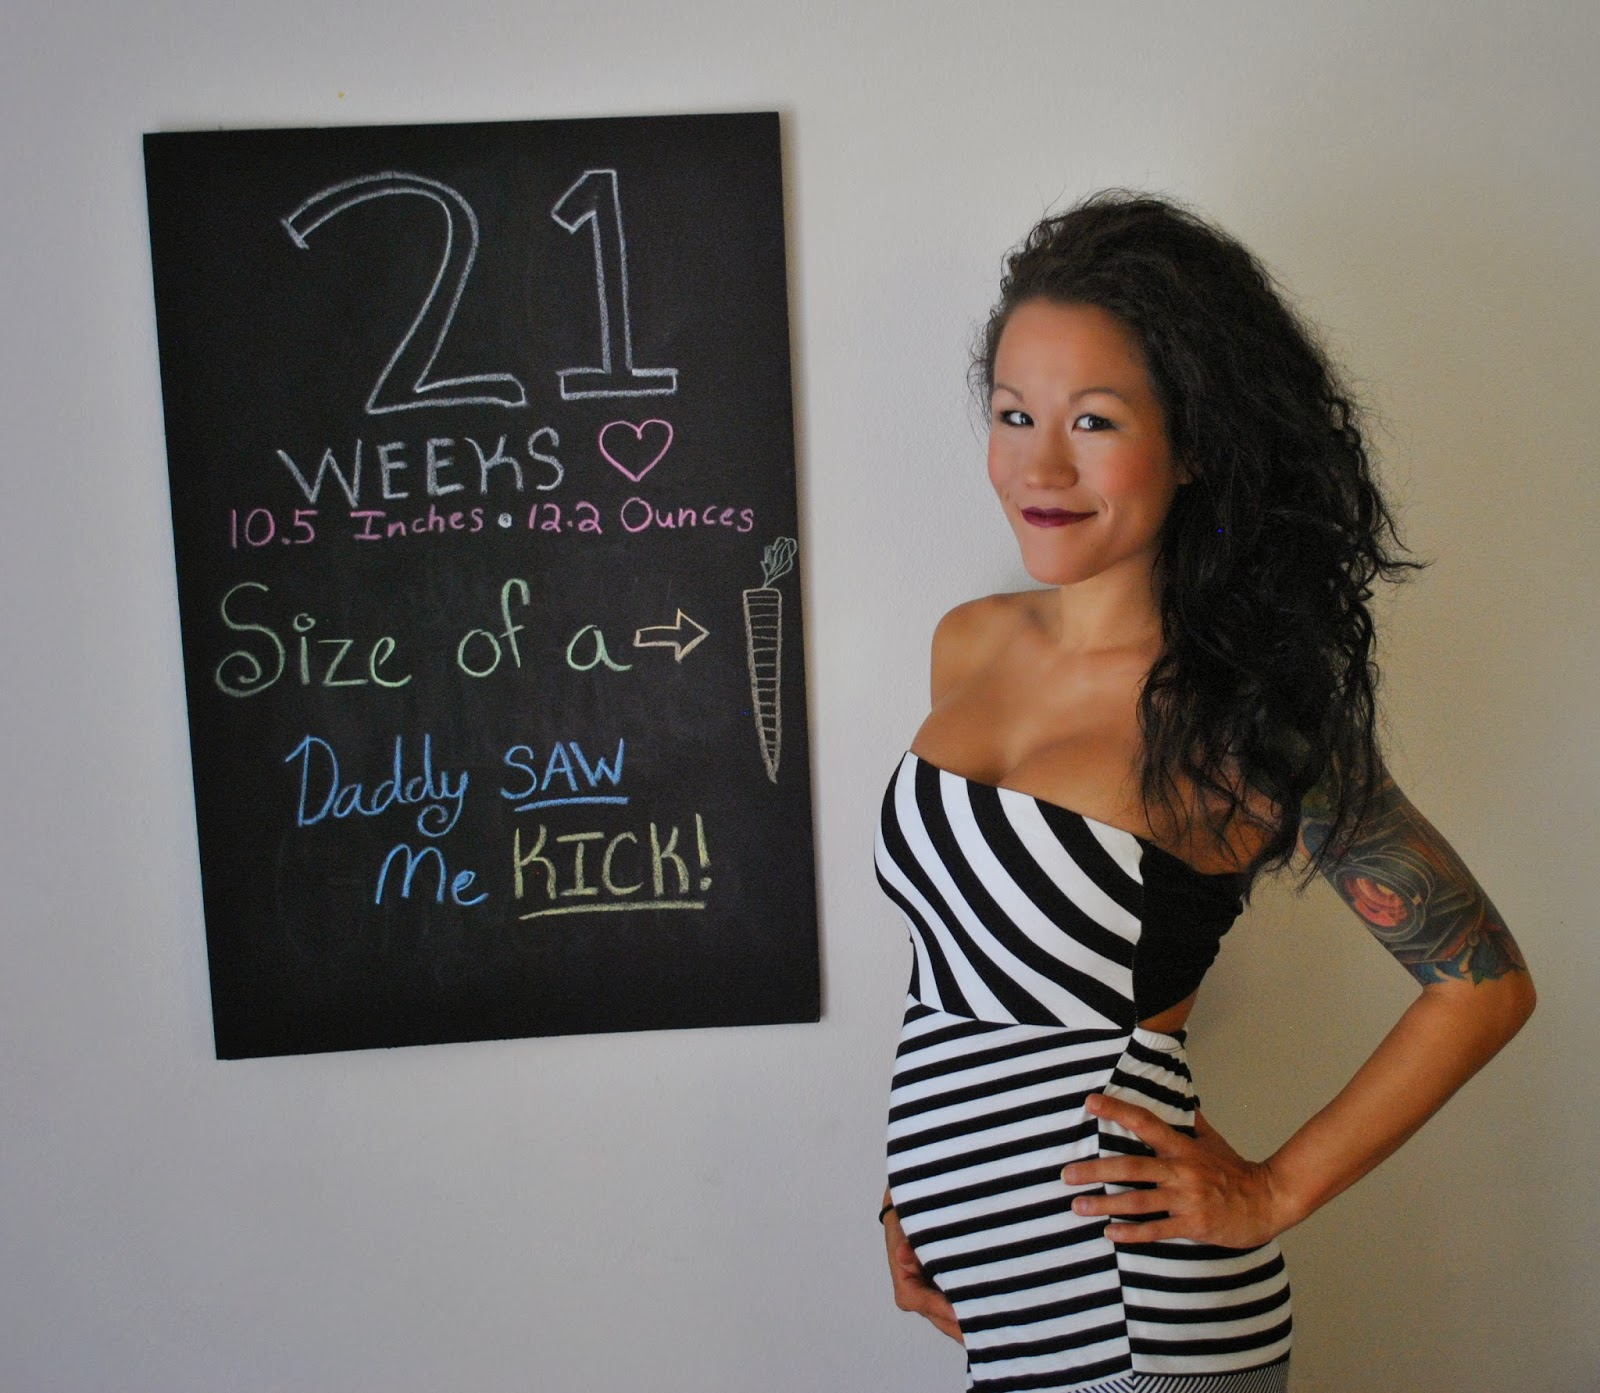 Diary of a Fit Mommy: 21 Weeks Pregnancy Chalkboard Update